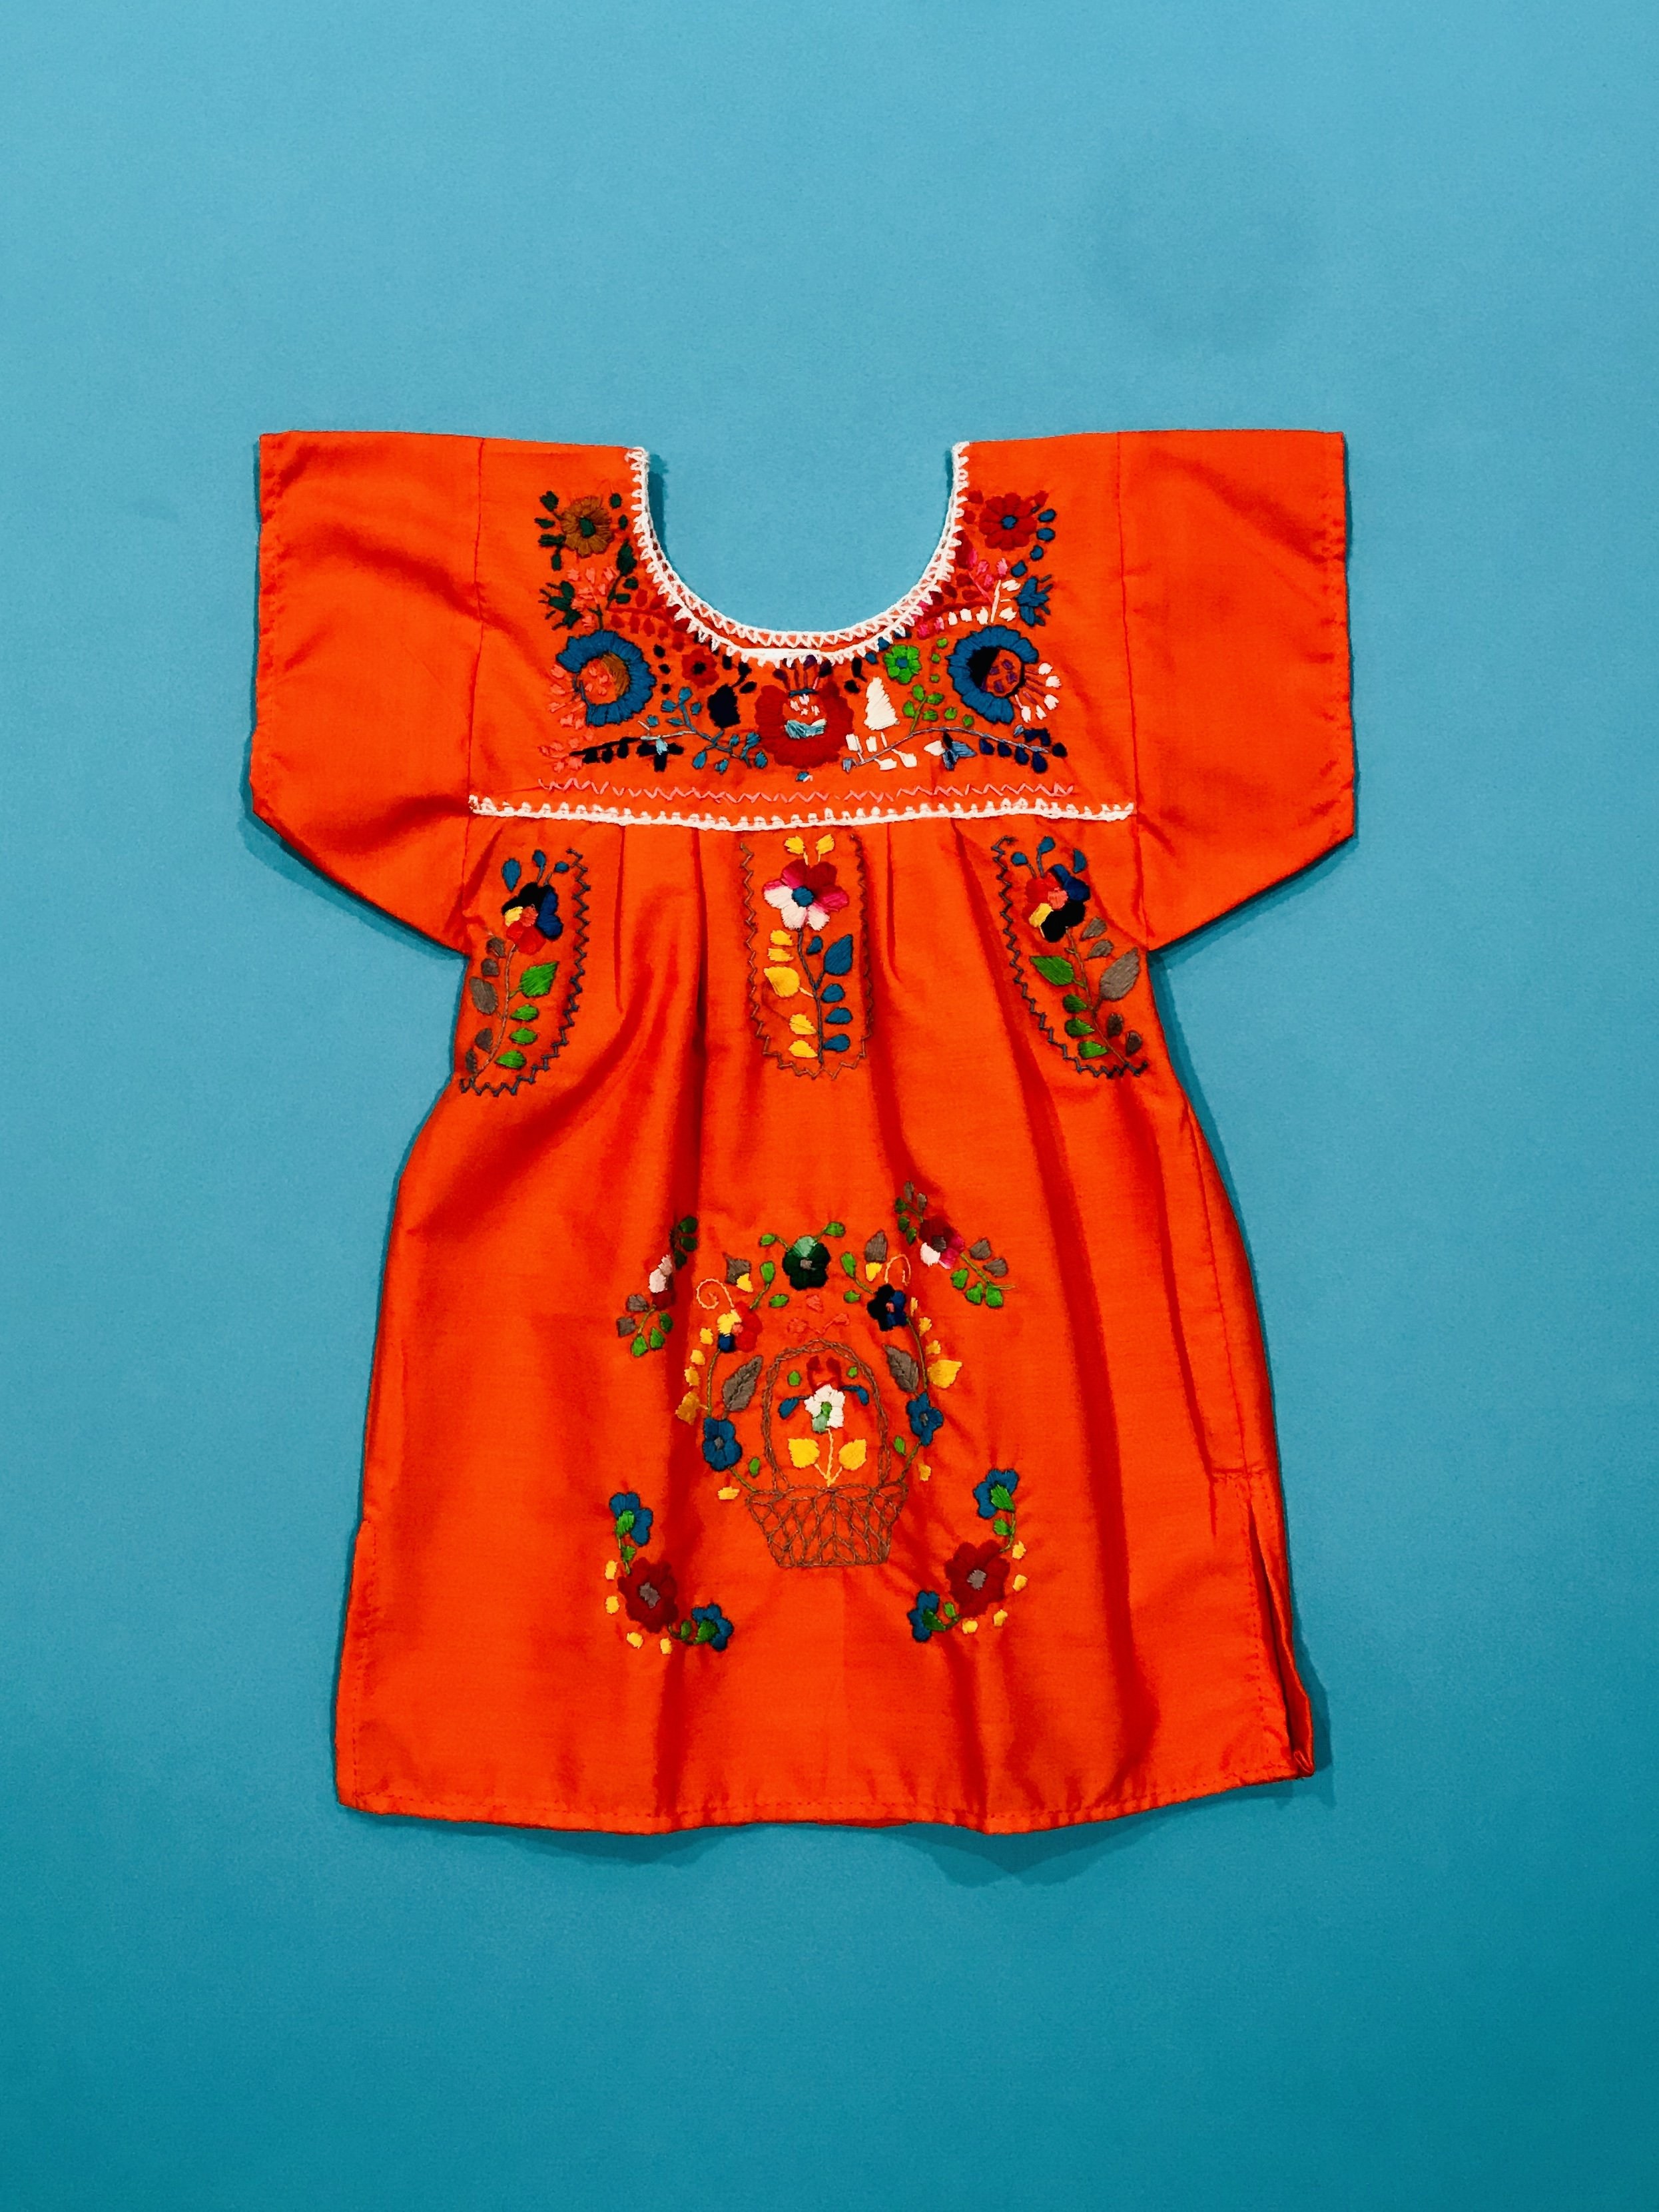 c6bce06ba NEW - Embroidered Girls Mexican Dresses : Size 12/24m | Products